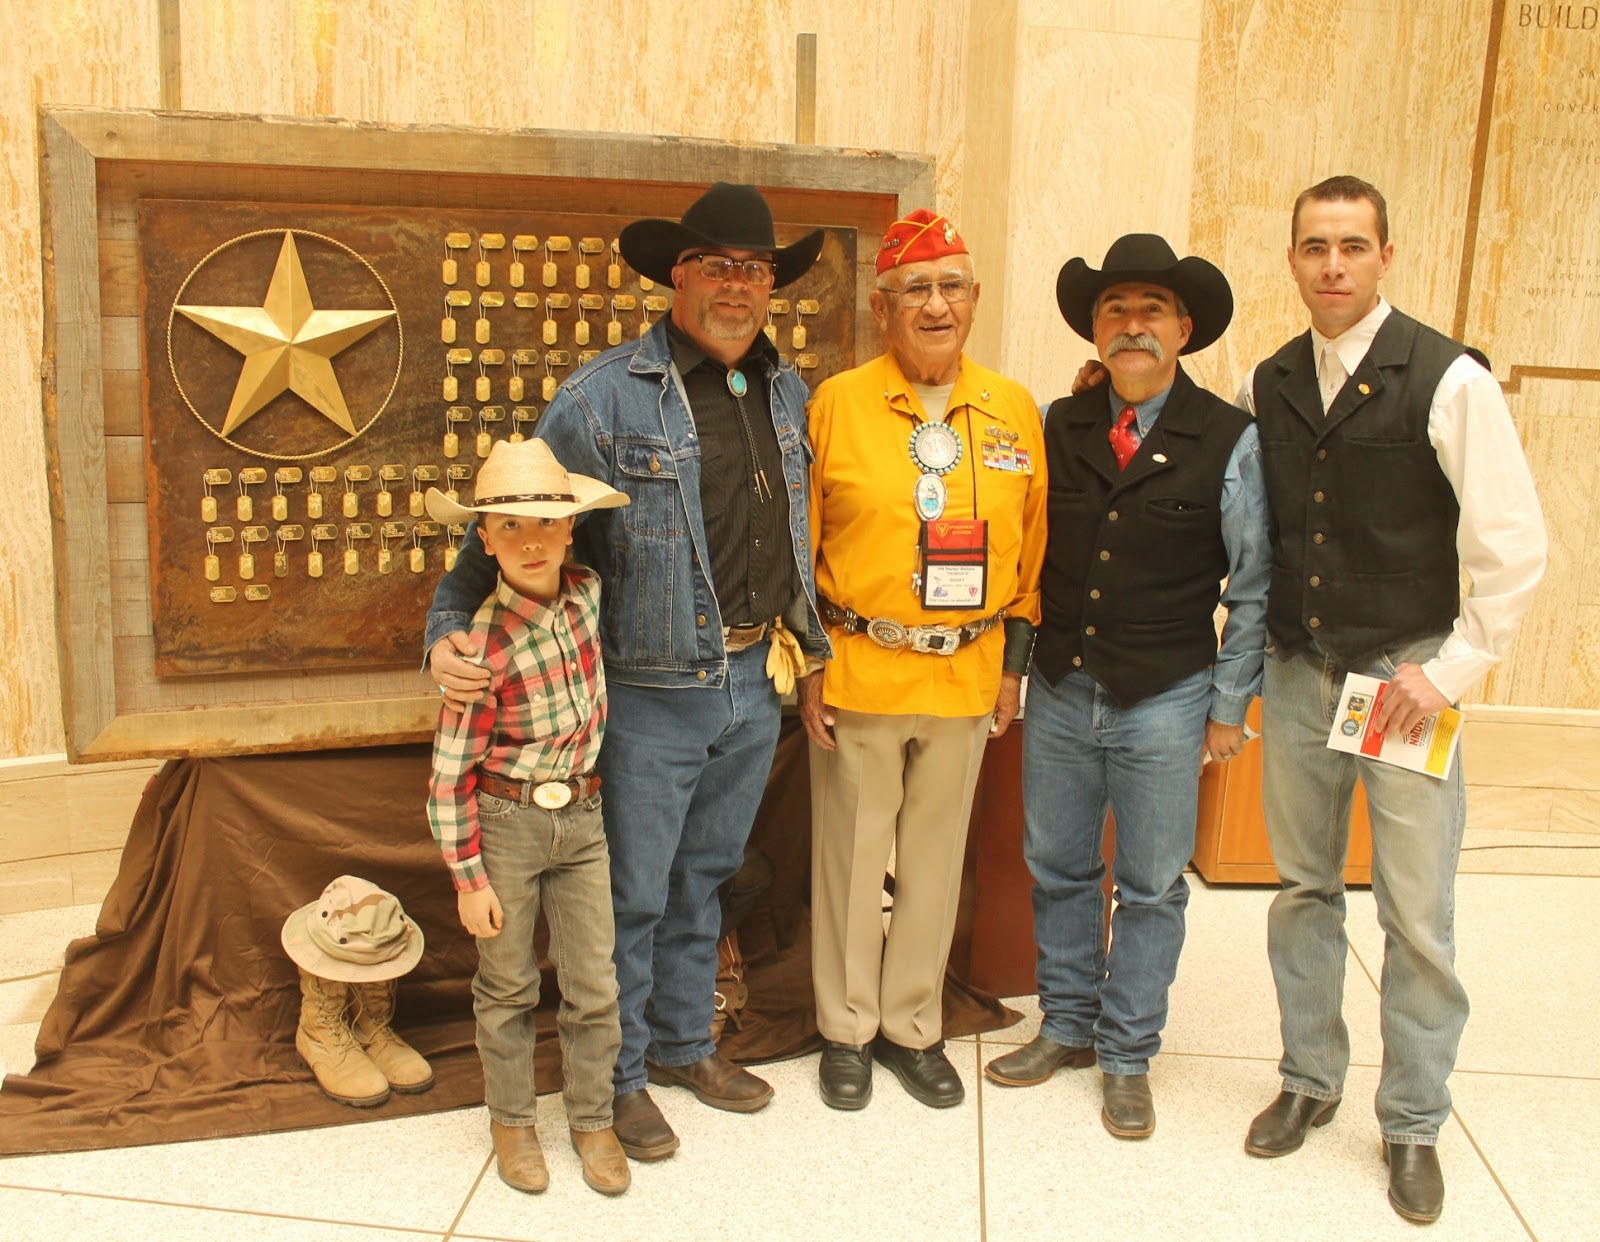 Horses For Heroes - Cowboy Up! Executive director Rick Iannucci with American  Gold Star Mother and rancher Becky Christmas and Cowboy Up!director Nancy De  ... 08a5d856d